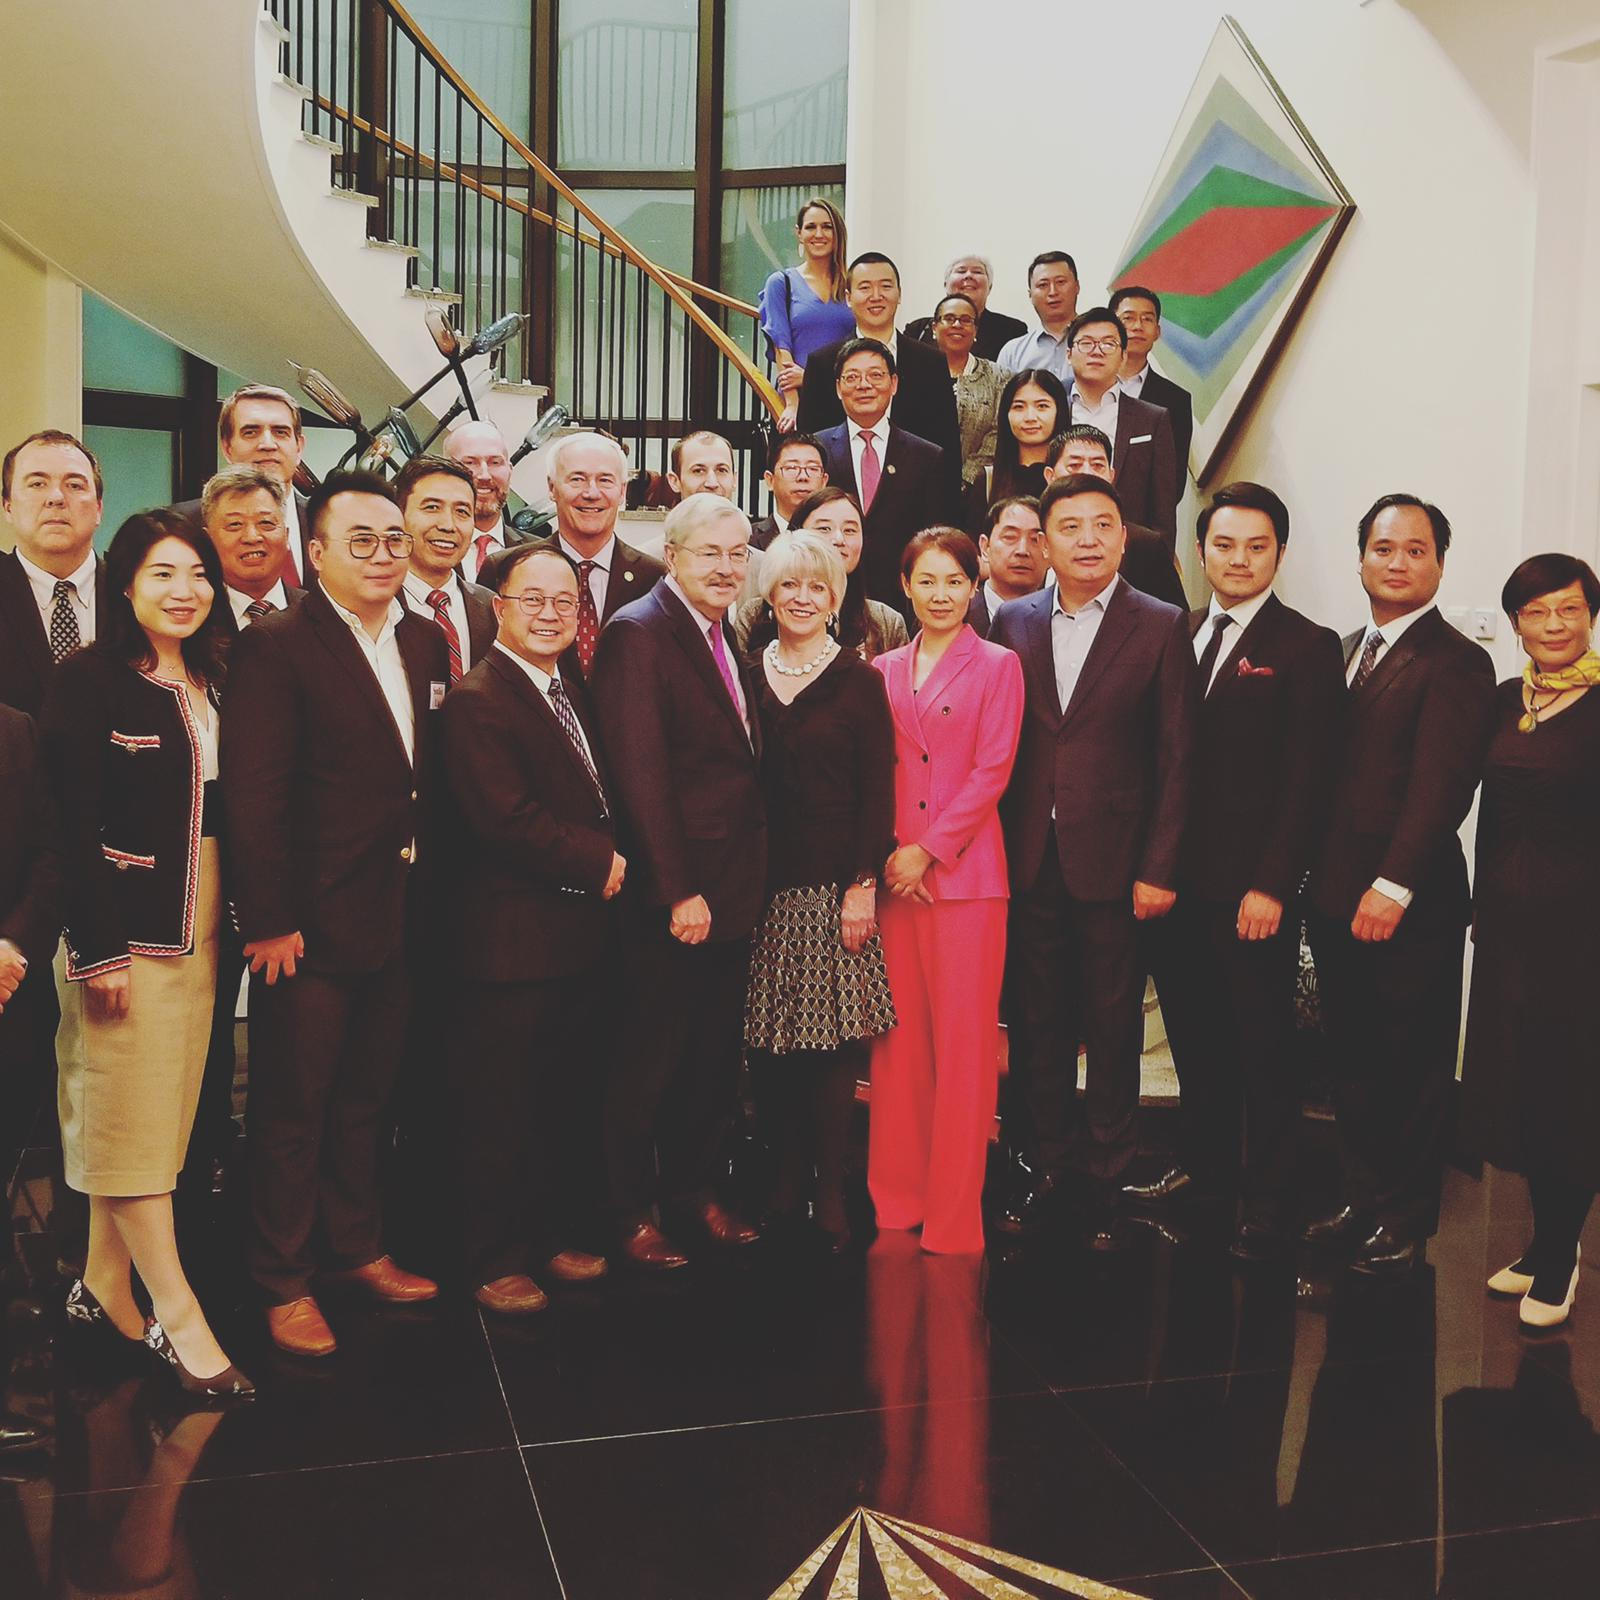 Asa Hutchinson Law Group founder and managing partner Asa Hutchinson III attended the Residence of the US Ambassador to China Terry Branstad.